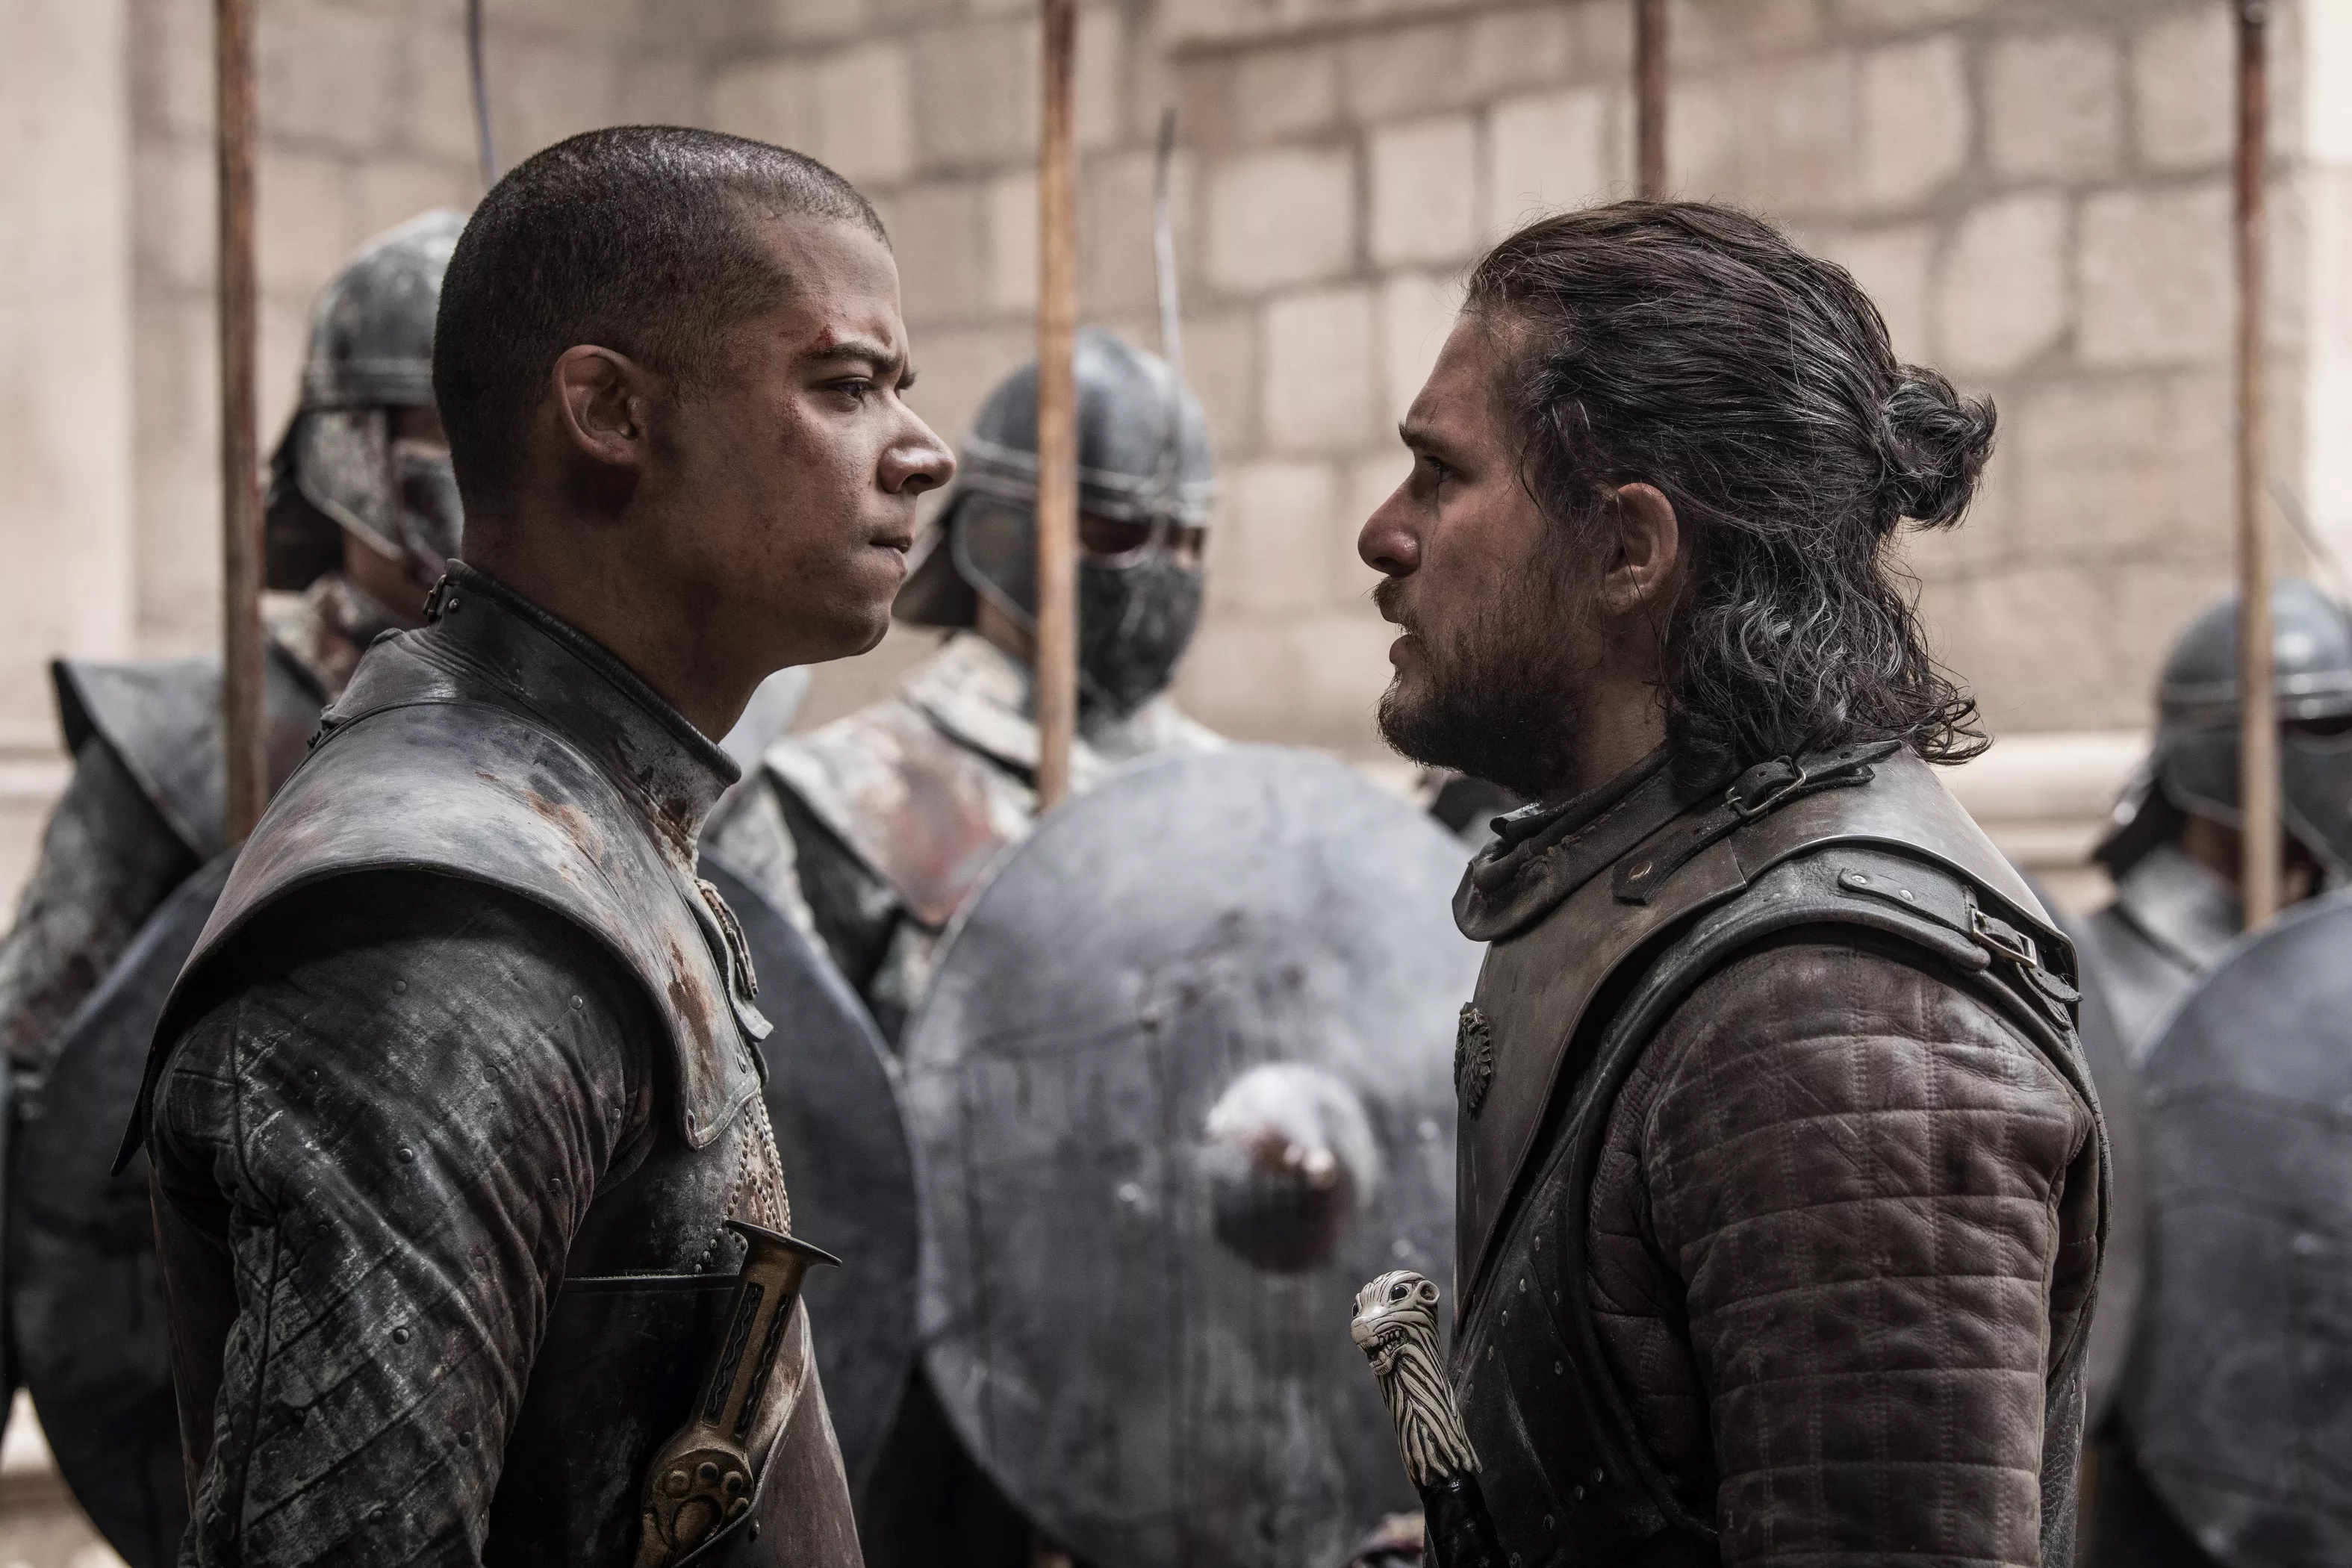 8x06 - The Iron kiti cha enzi - Grey Worm and Jon